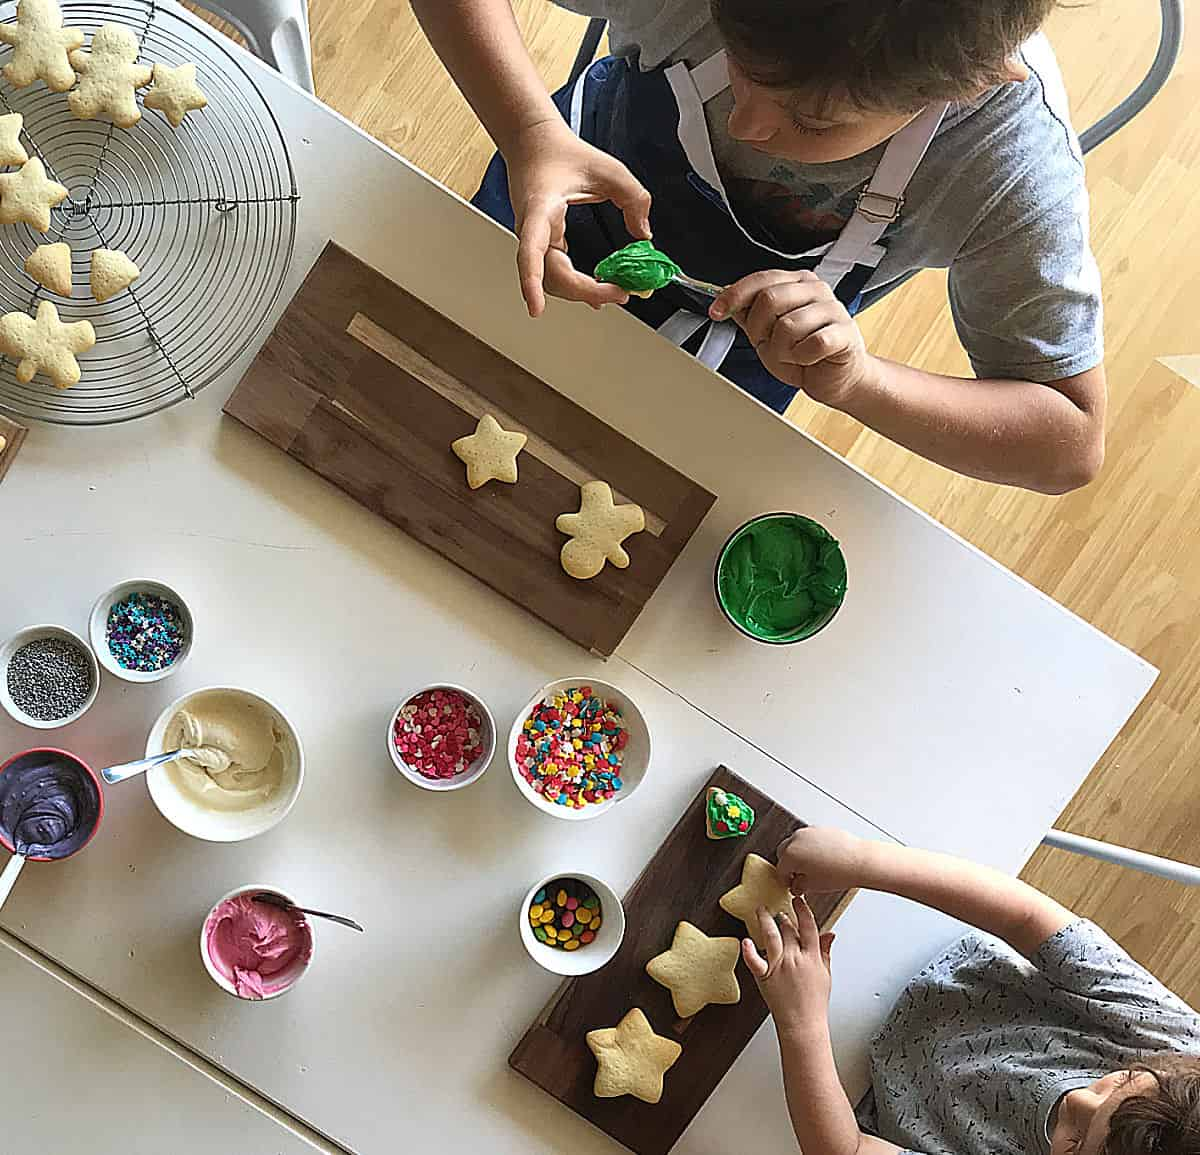 Top view of kids decorating sugar cookies on white table, bowls with colored frosting and sprinkles